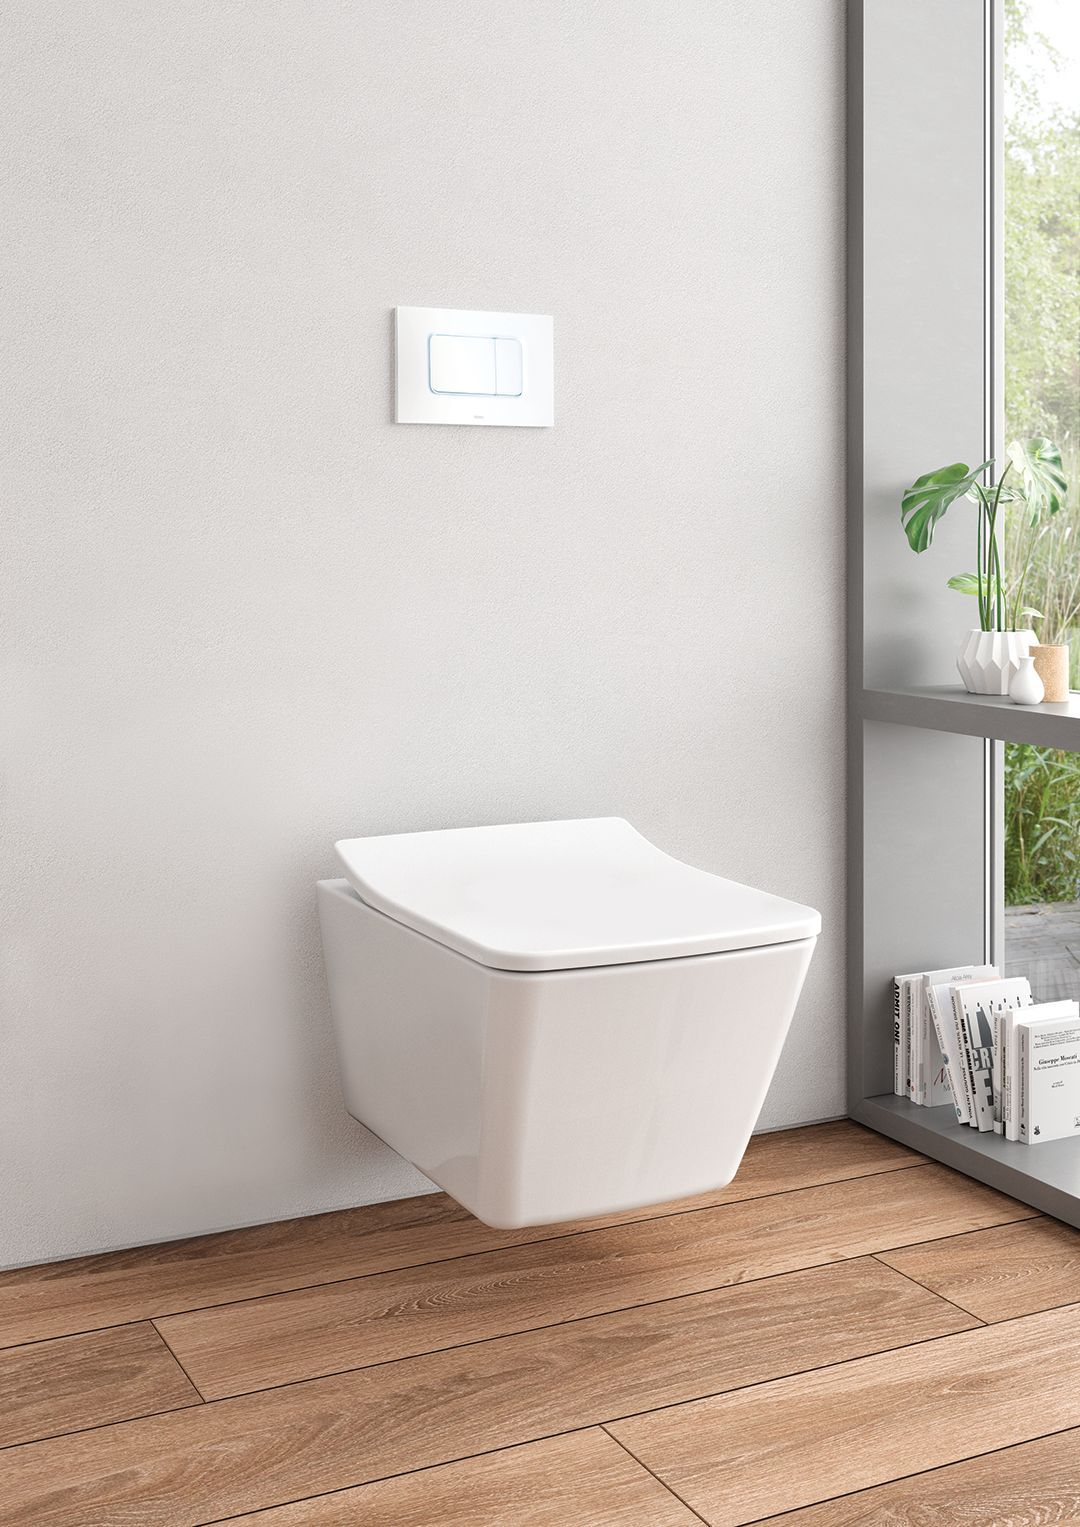 Sp Wall Hung Toilet In Wall Tank System 1 28 0 9 Gpf